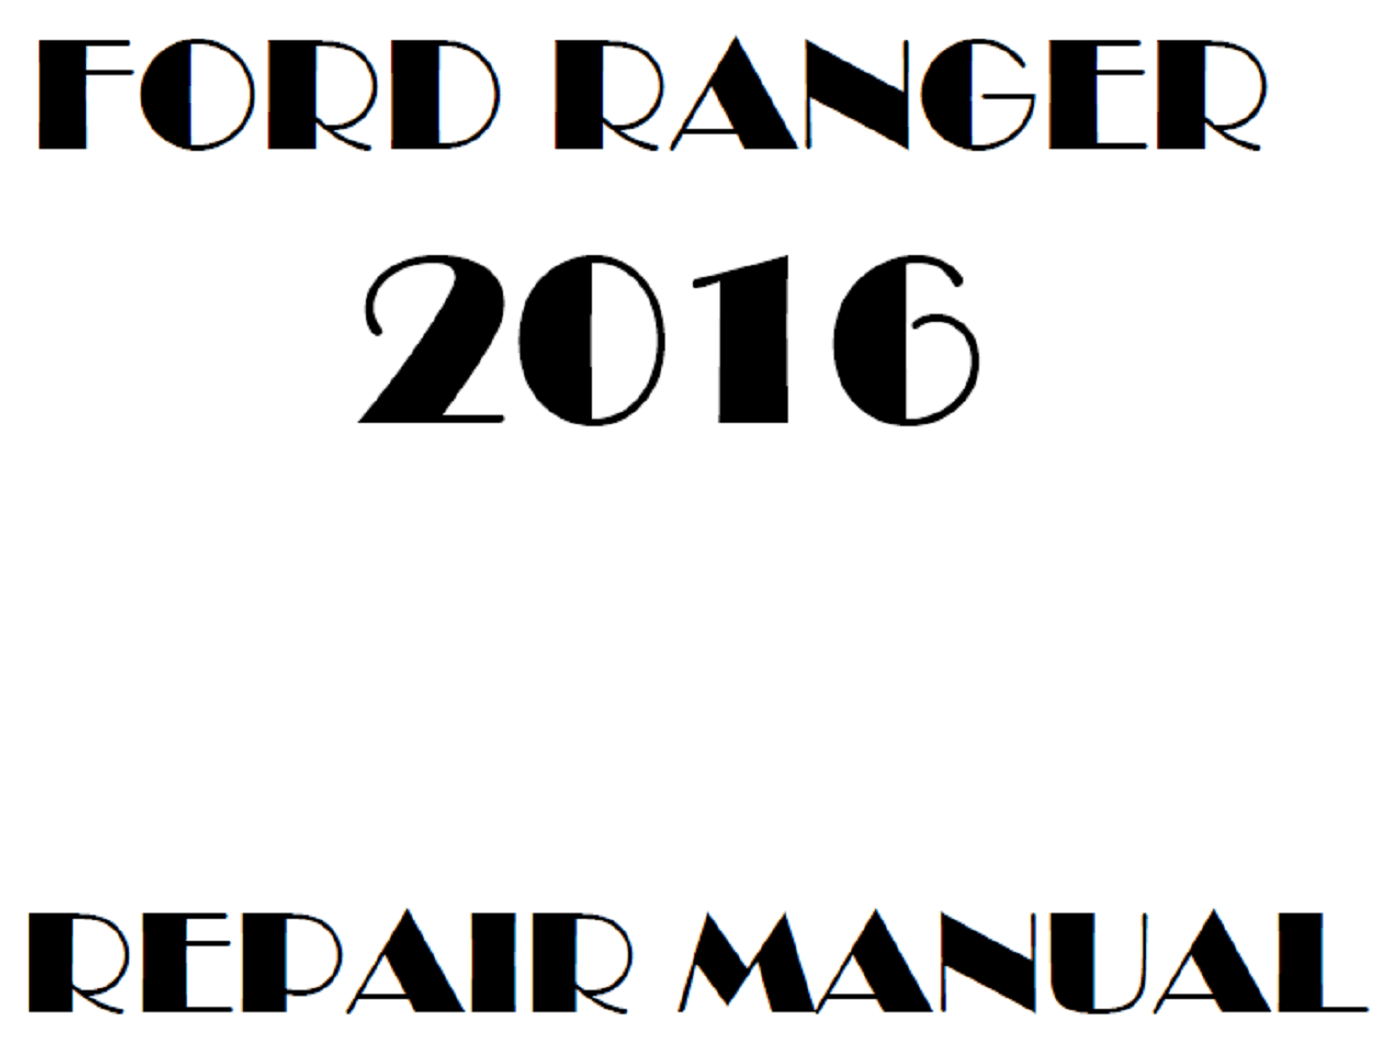 2016 Ford Ranger repair manual